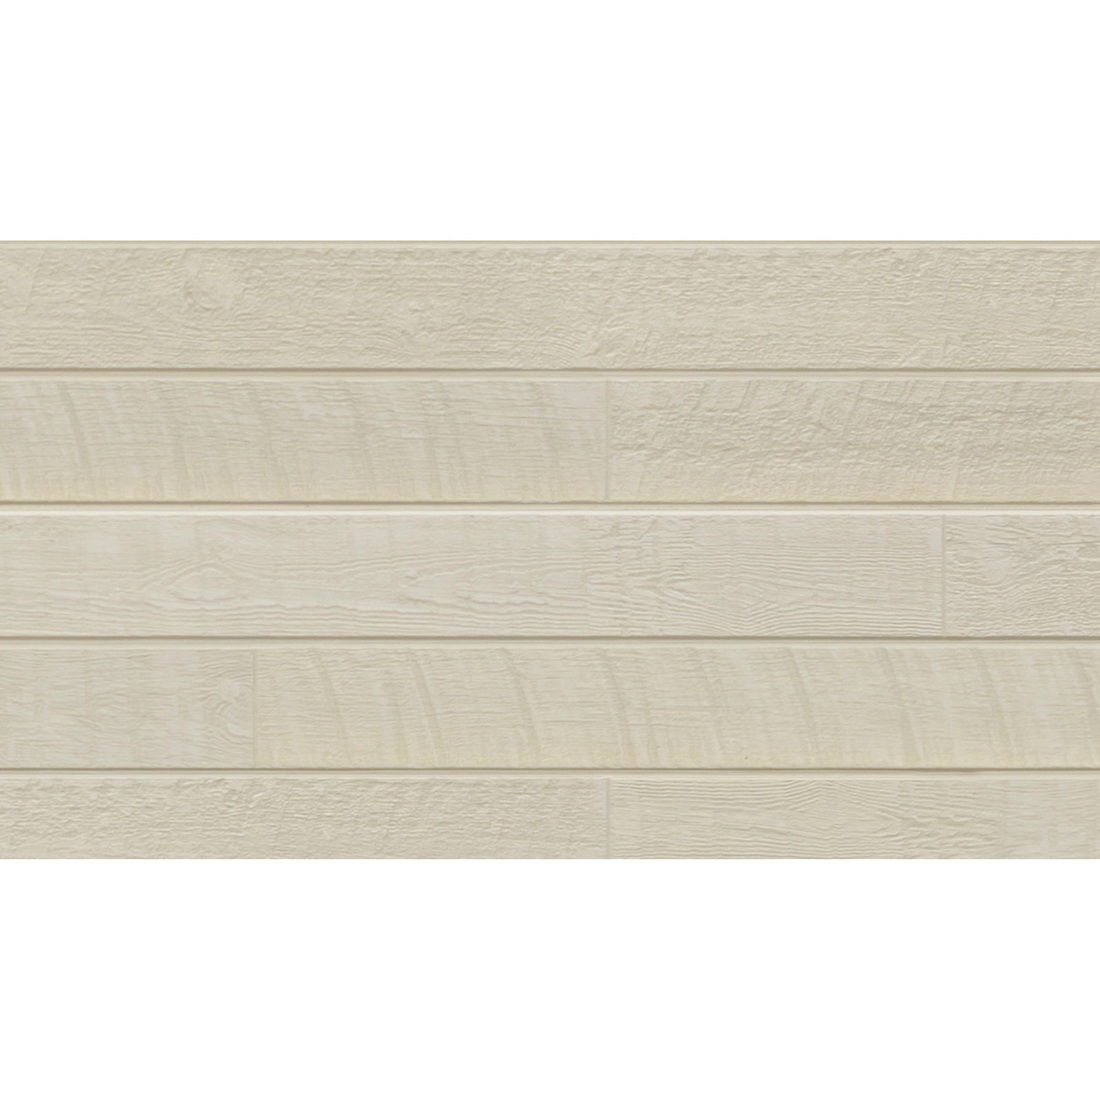 Territory Woodlands 16x455x3030mm Panel Limed 2 Sheet